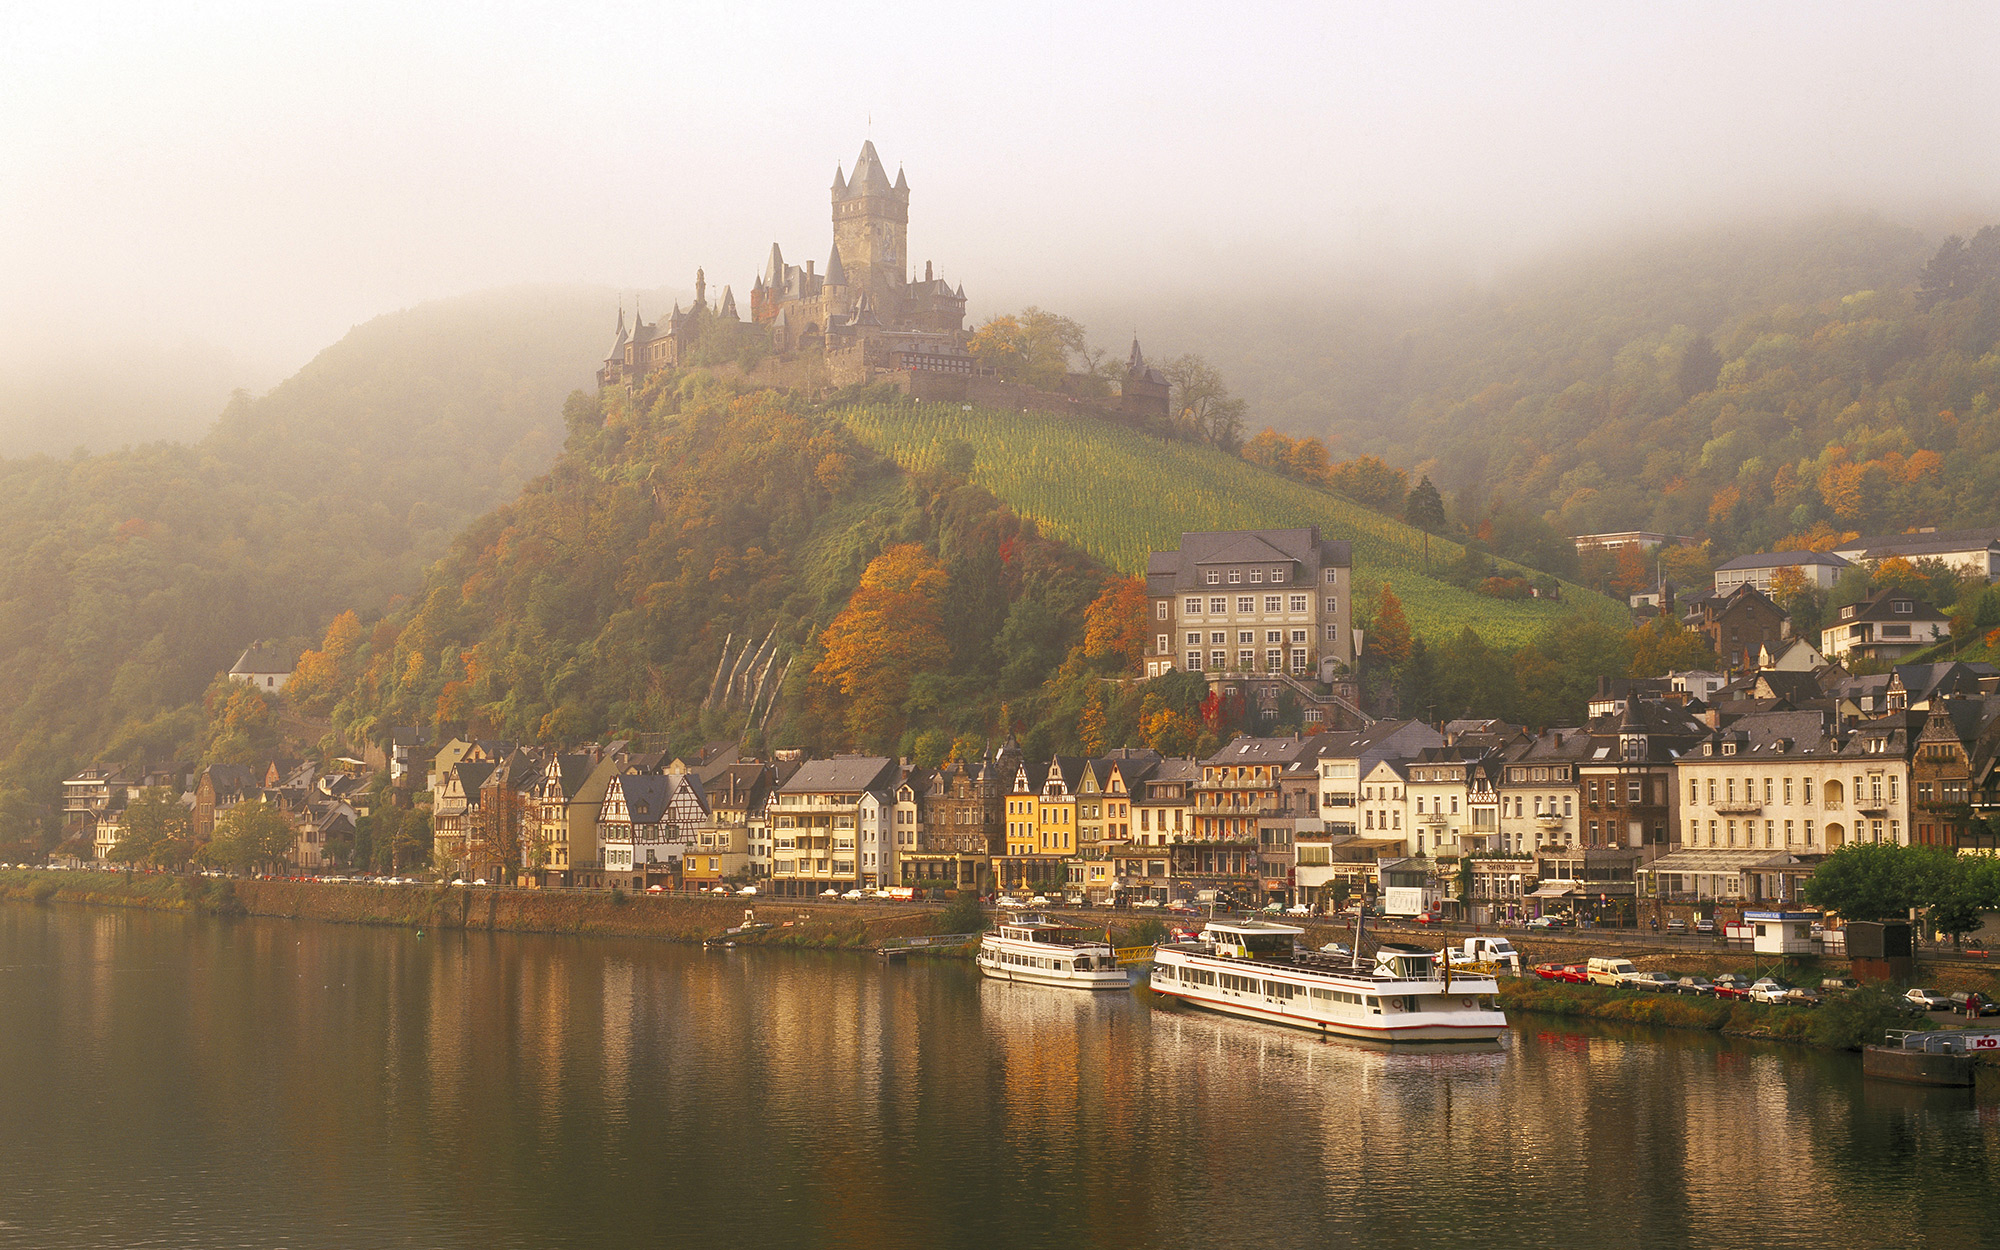 Europe's Most Beautiful Villages: Cochem, Germany